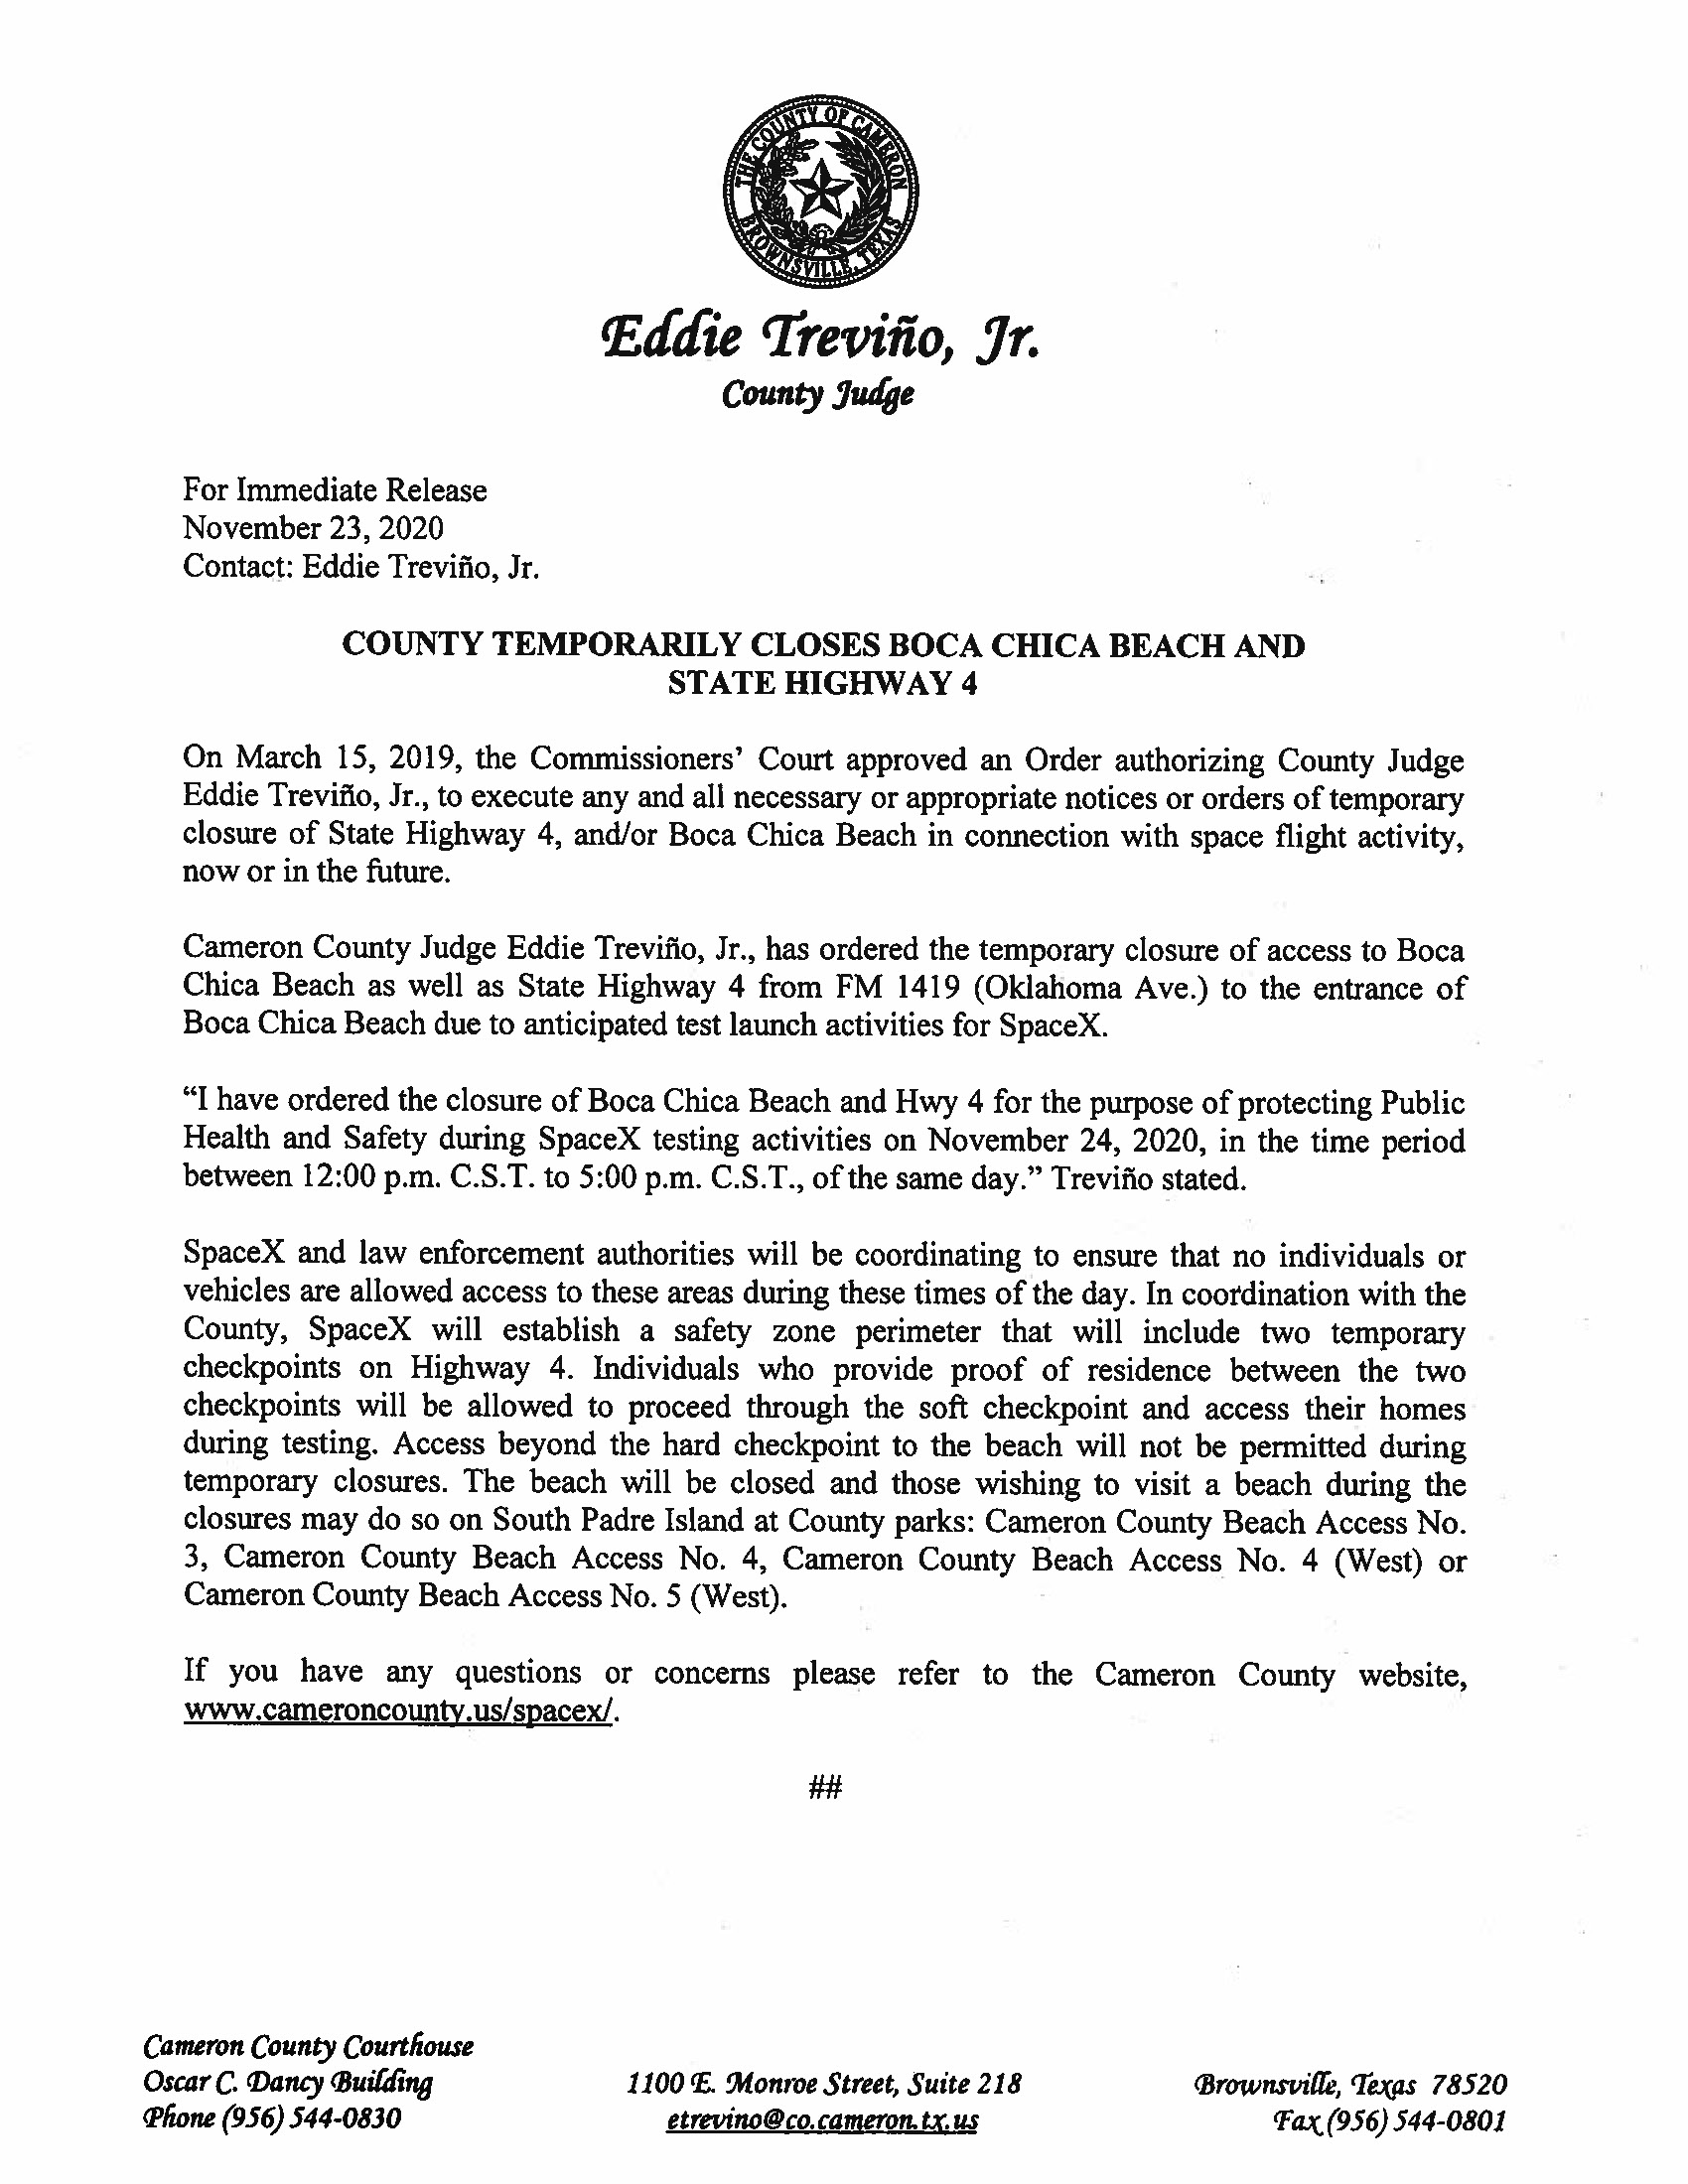 Press Release In English And Spanish.11.24.20 Page 1